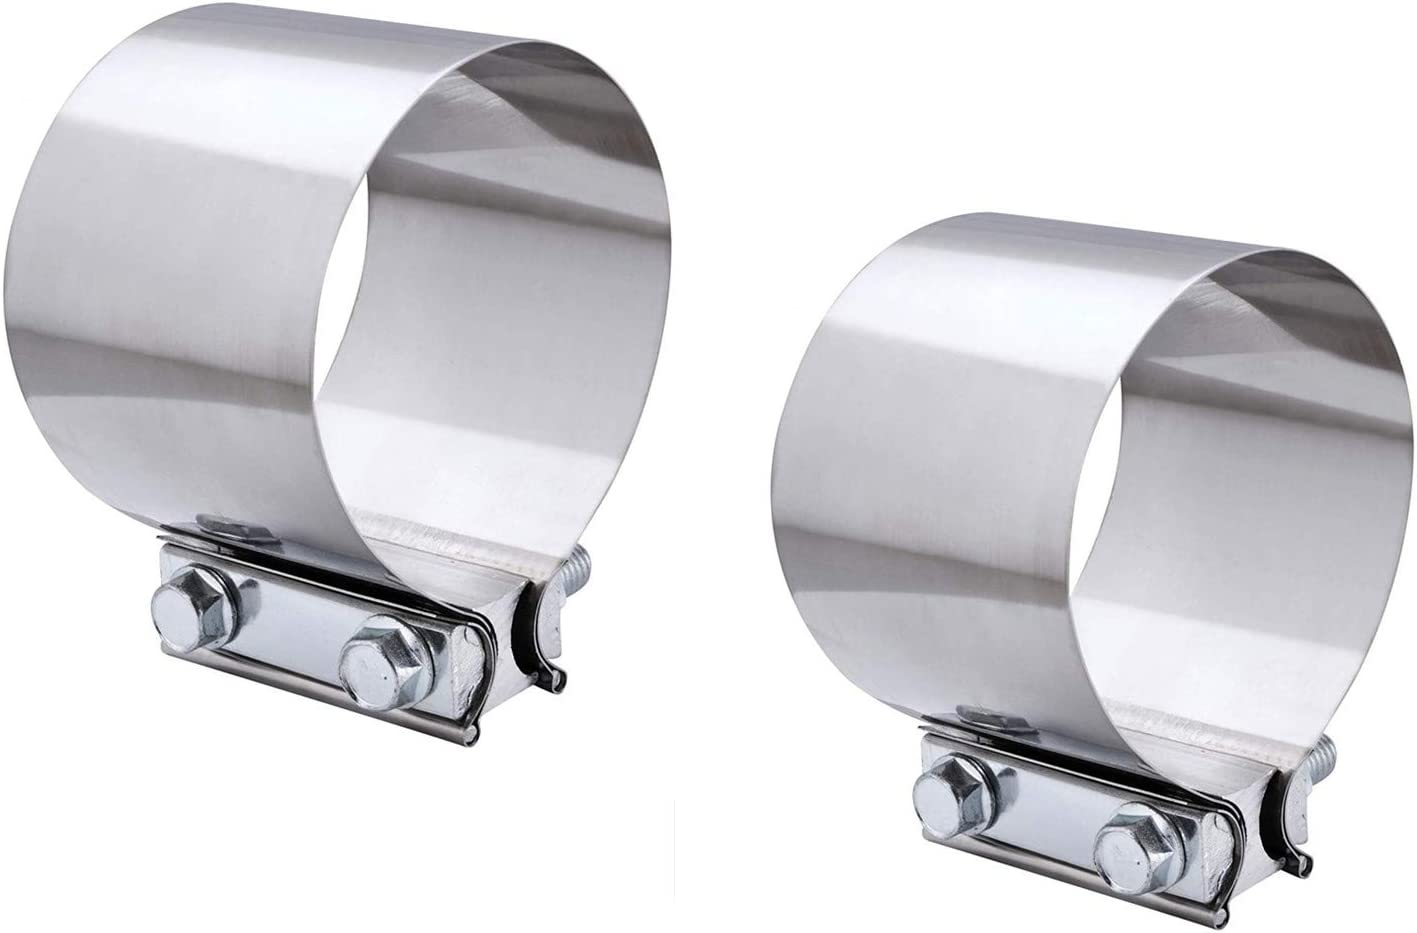 2PCS Exhaust Clamps 2.5 Inch Butt Joint Exhaust Pipe Muffler Clamp Band Stainless Steel Car Auto Exhaust Pipe Connection for Cars